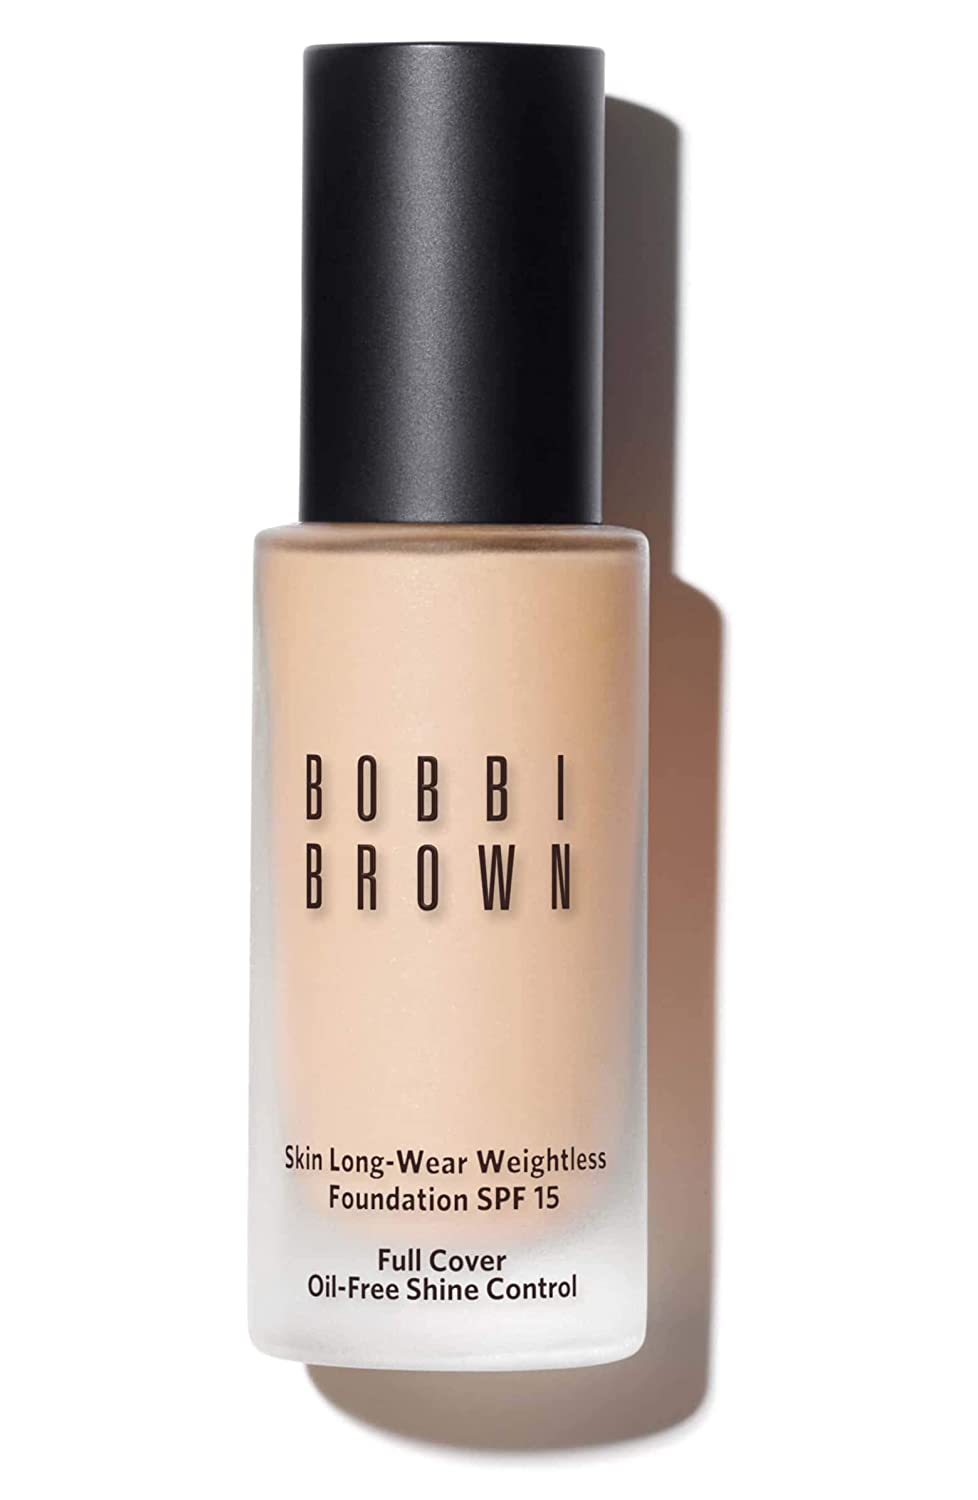 Bobbi Brown Skin Long-Wear Weightless Foundation Broad Spectrum SPF 15 - Porcelain (0) - 1 fl oz/30 ml